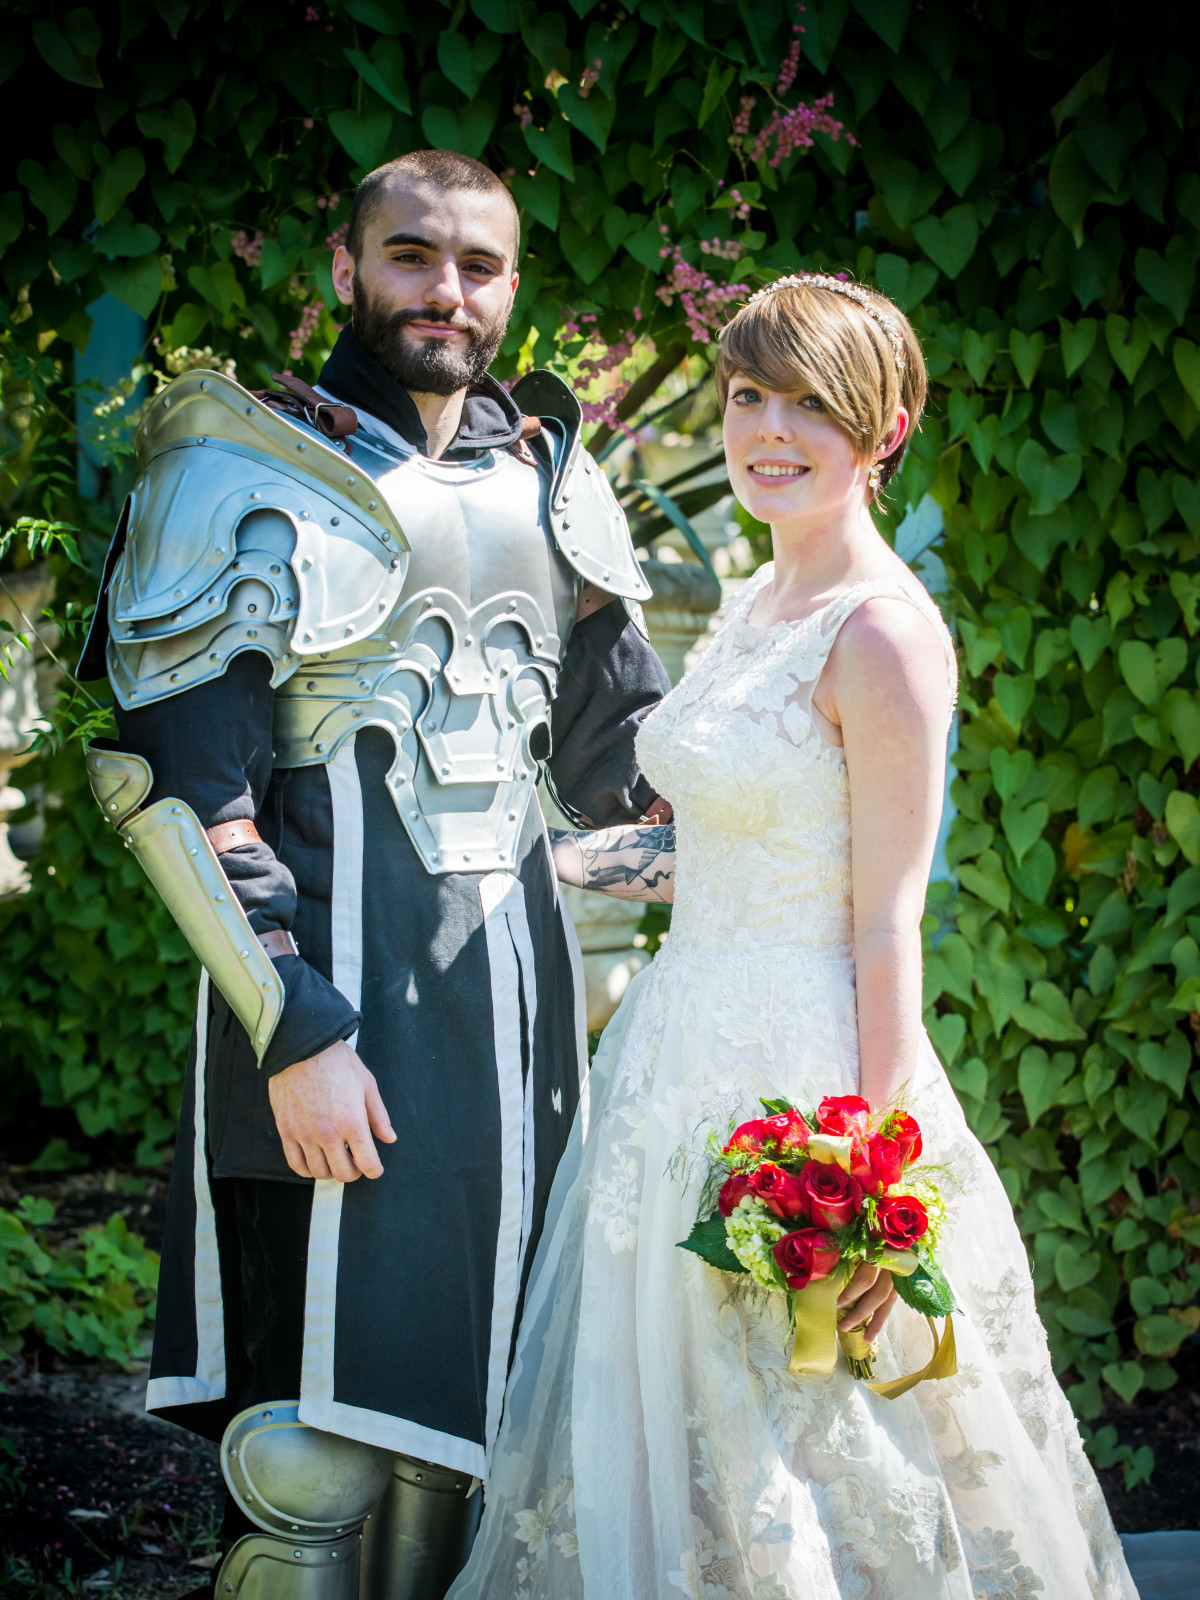 Renaissance Festival Weddings, Feb. 2016 Kalleub Carpenter, Ariel Timmons